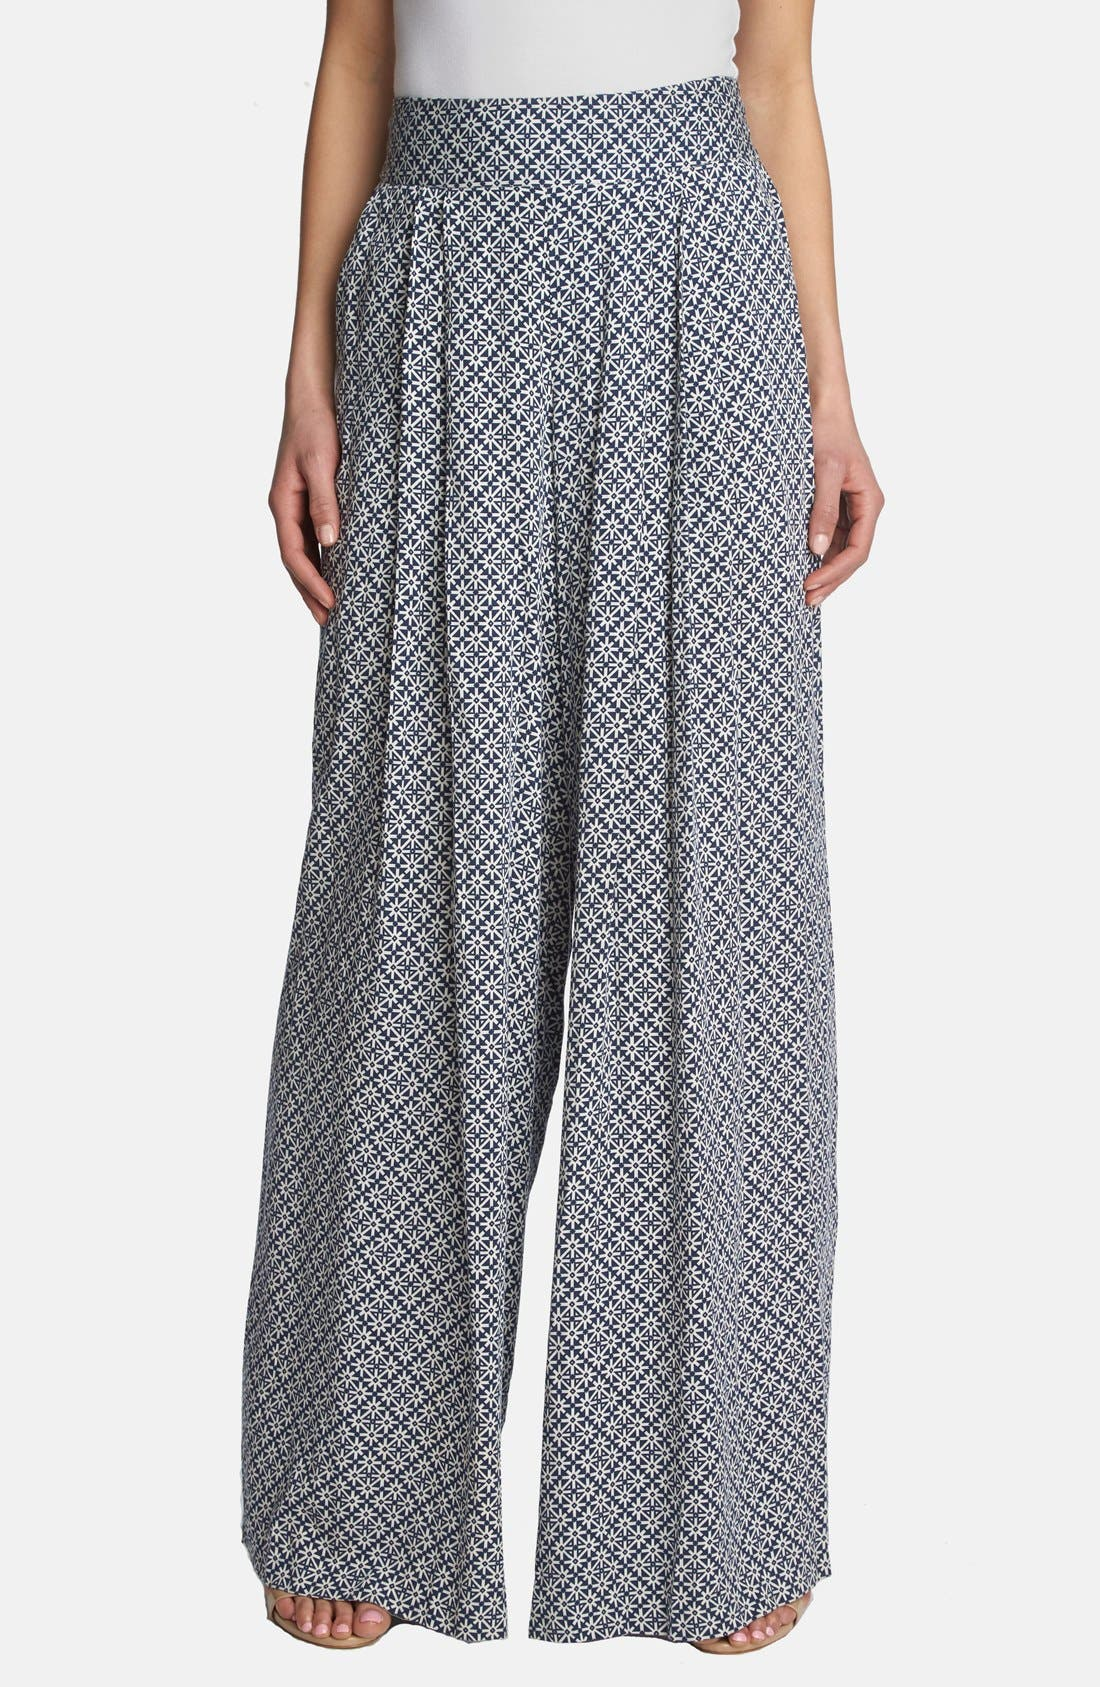 Alternate Image 1 Selected - 1.STATE High Rise Wide Leg Print Trousers